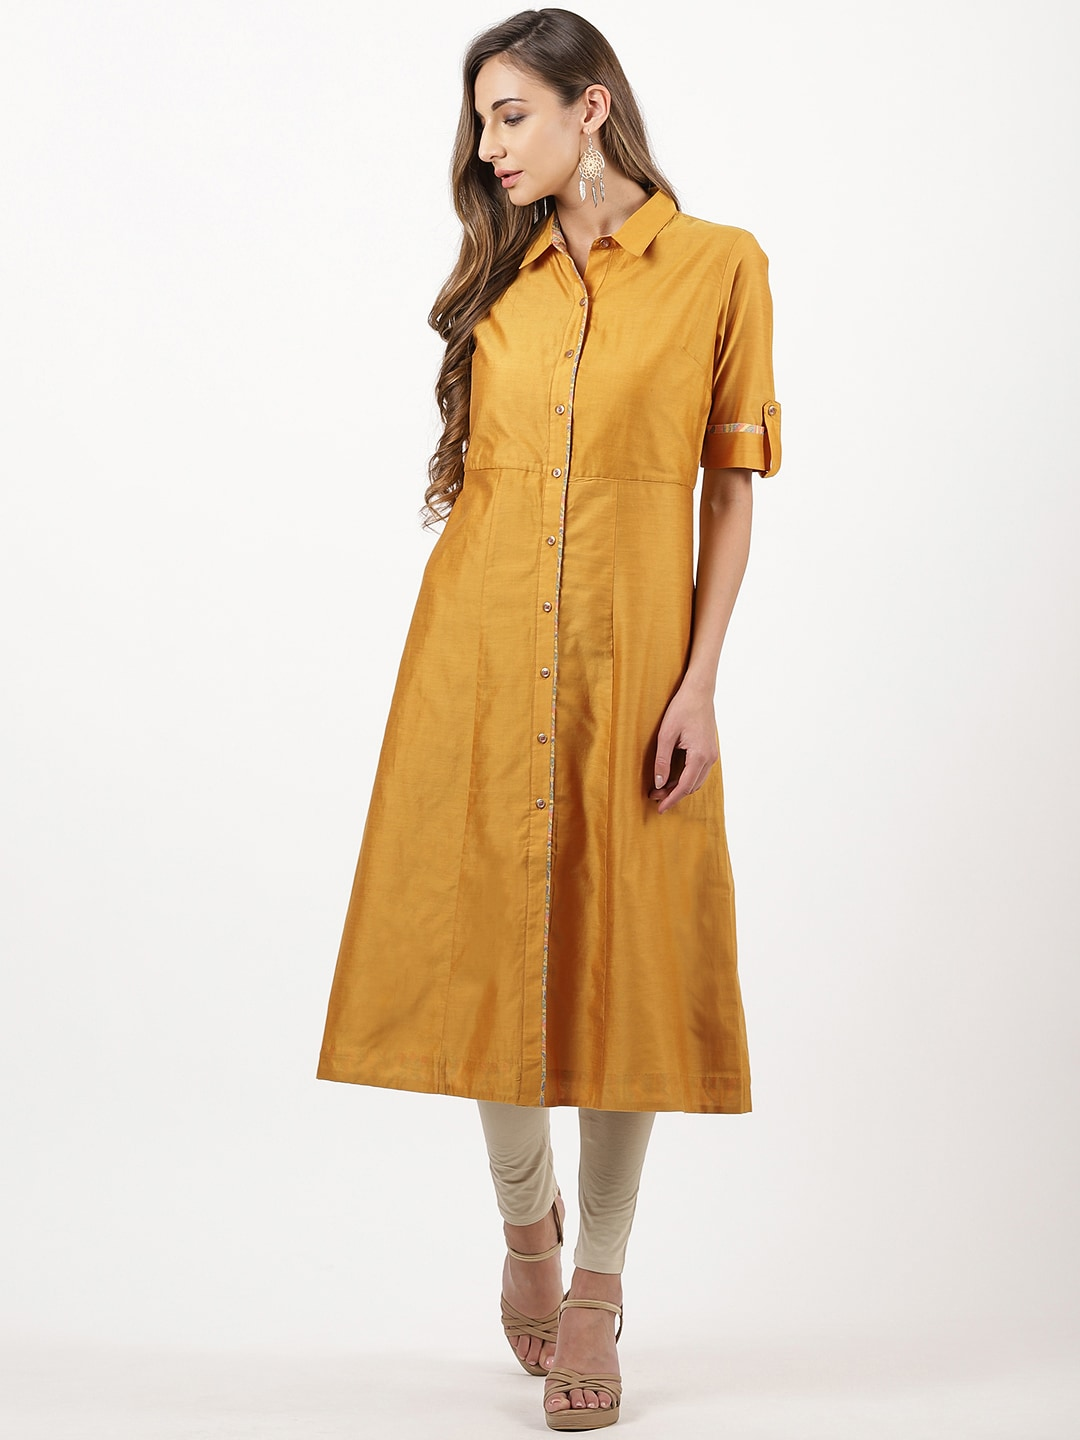 40e4aab5c Fusion Wear - Online Shopping of Indian Fusion Wear | Myntra